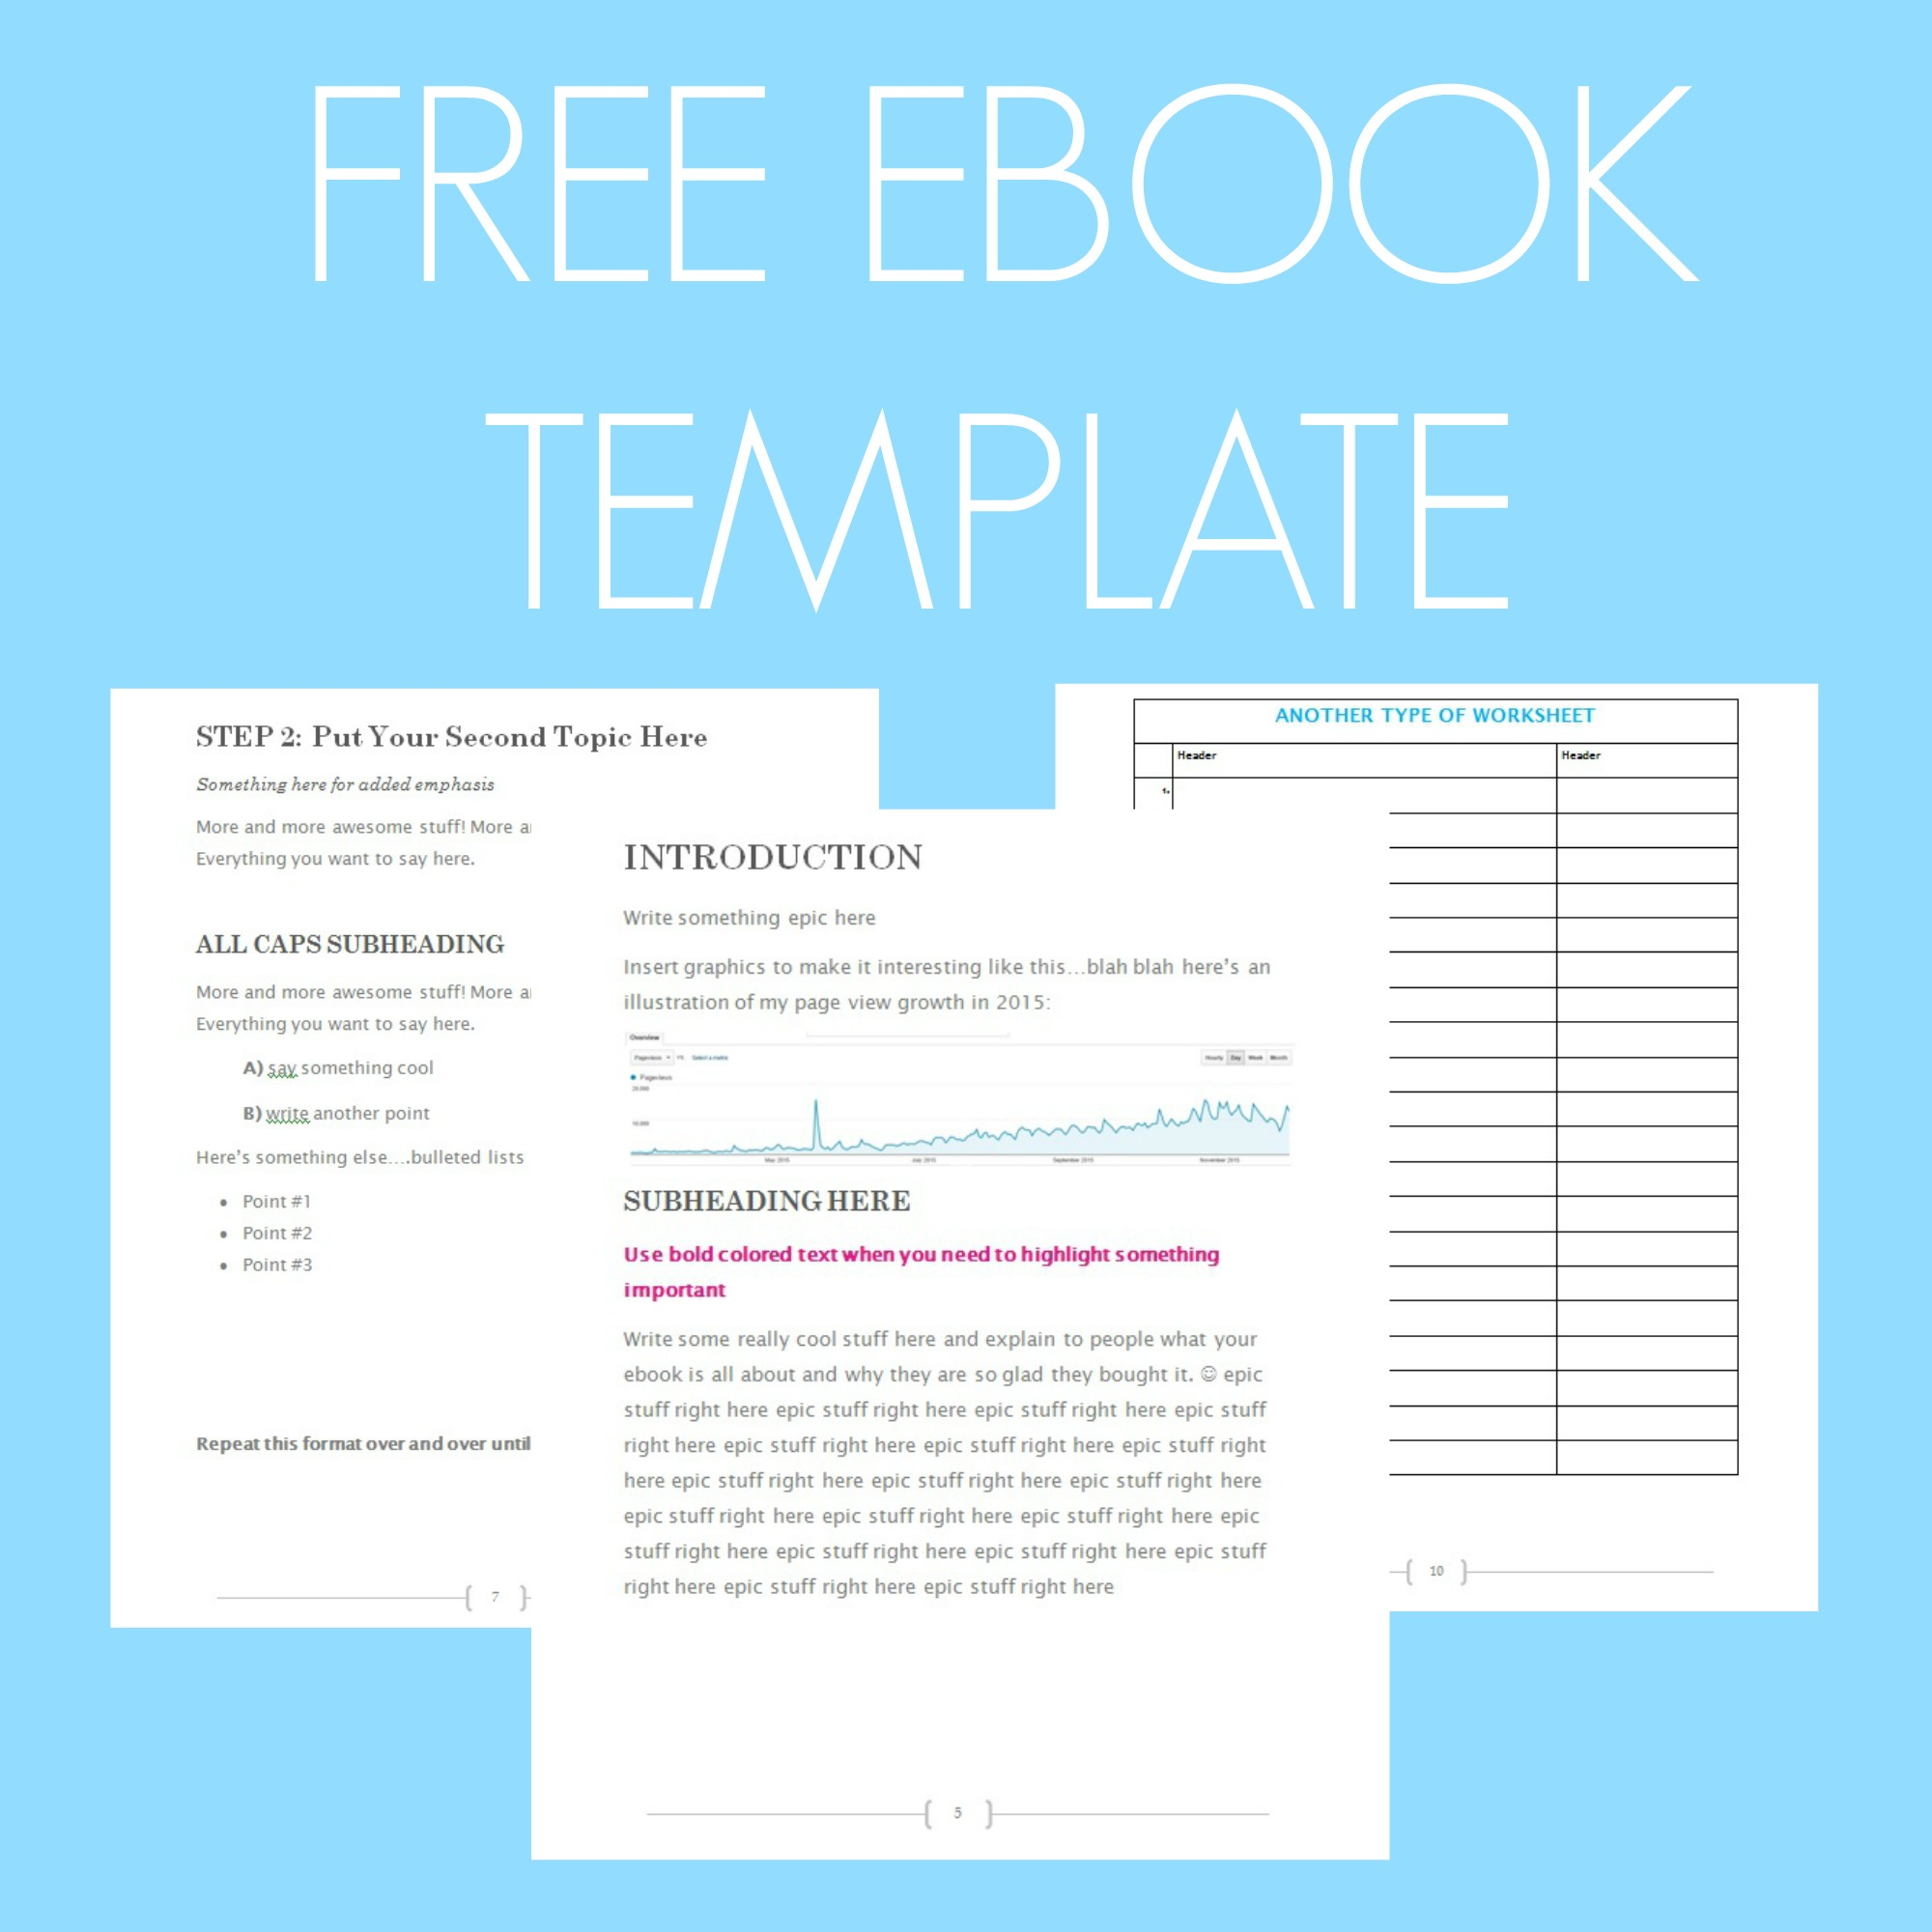 Free Ebook Template - Preformatted Word Document - What Mommy Does